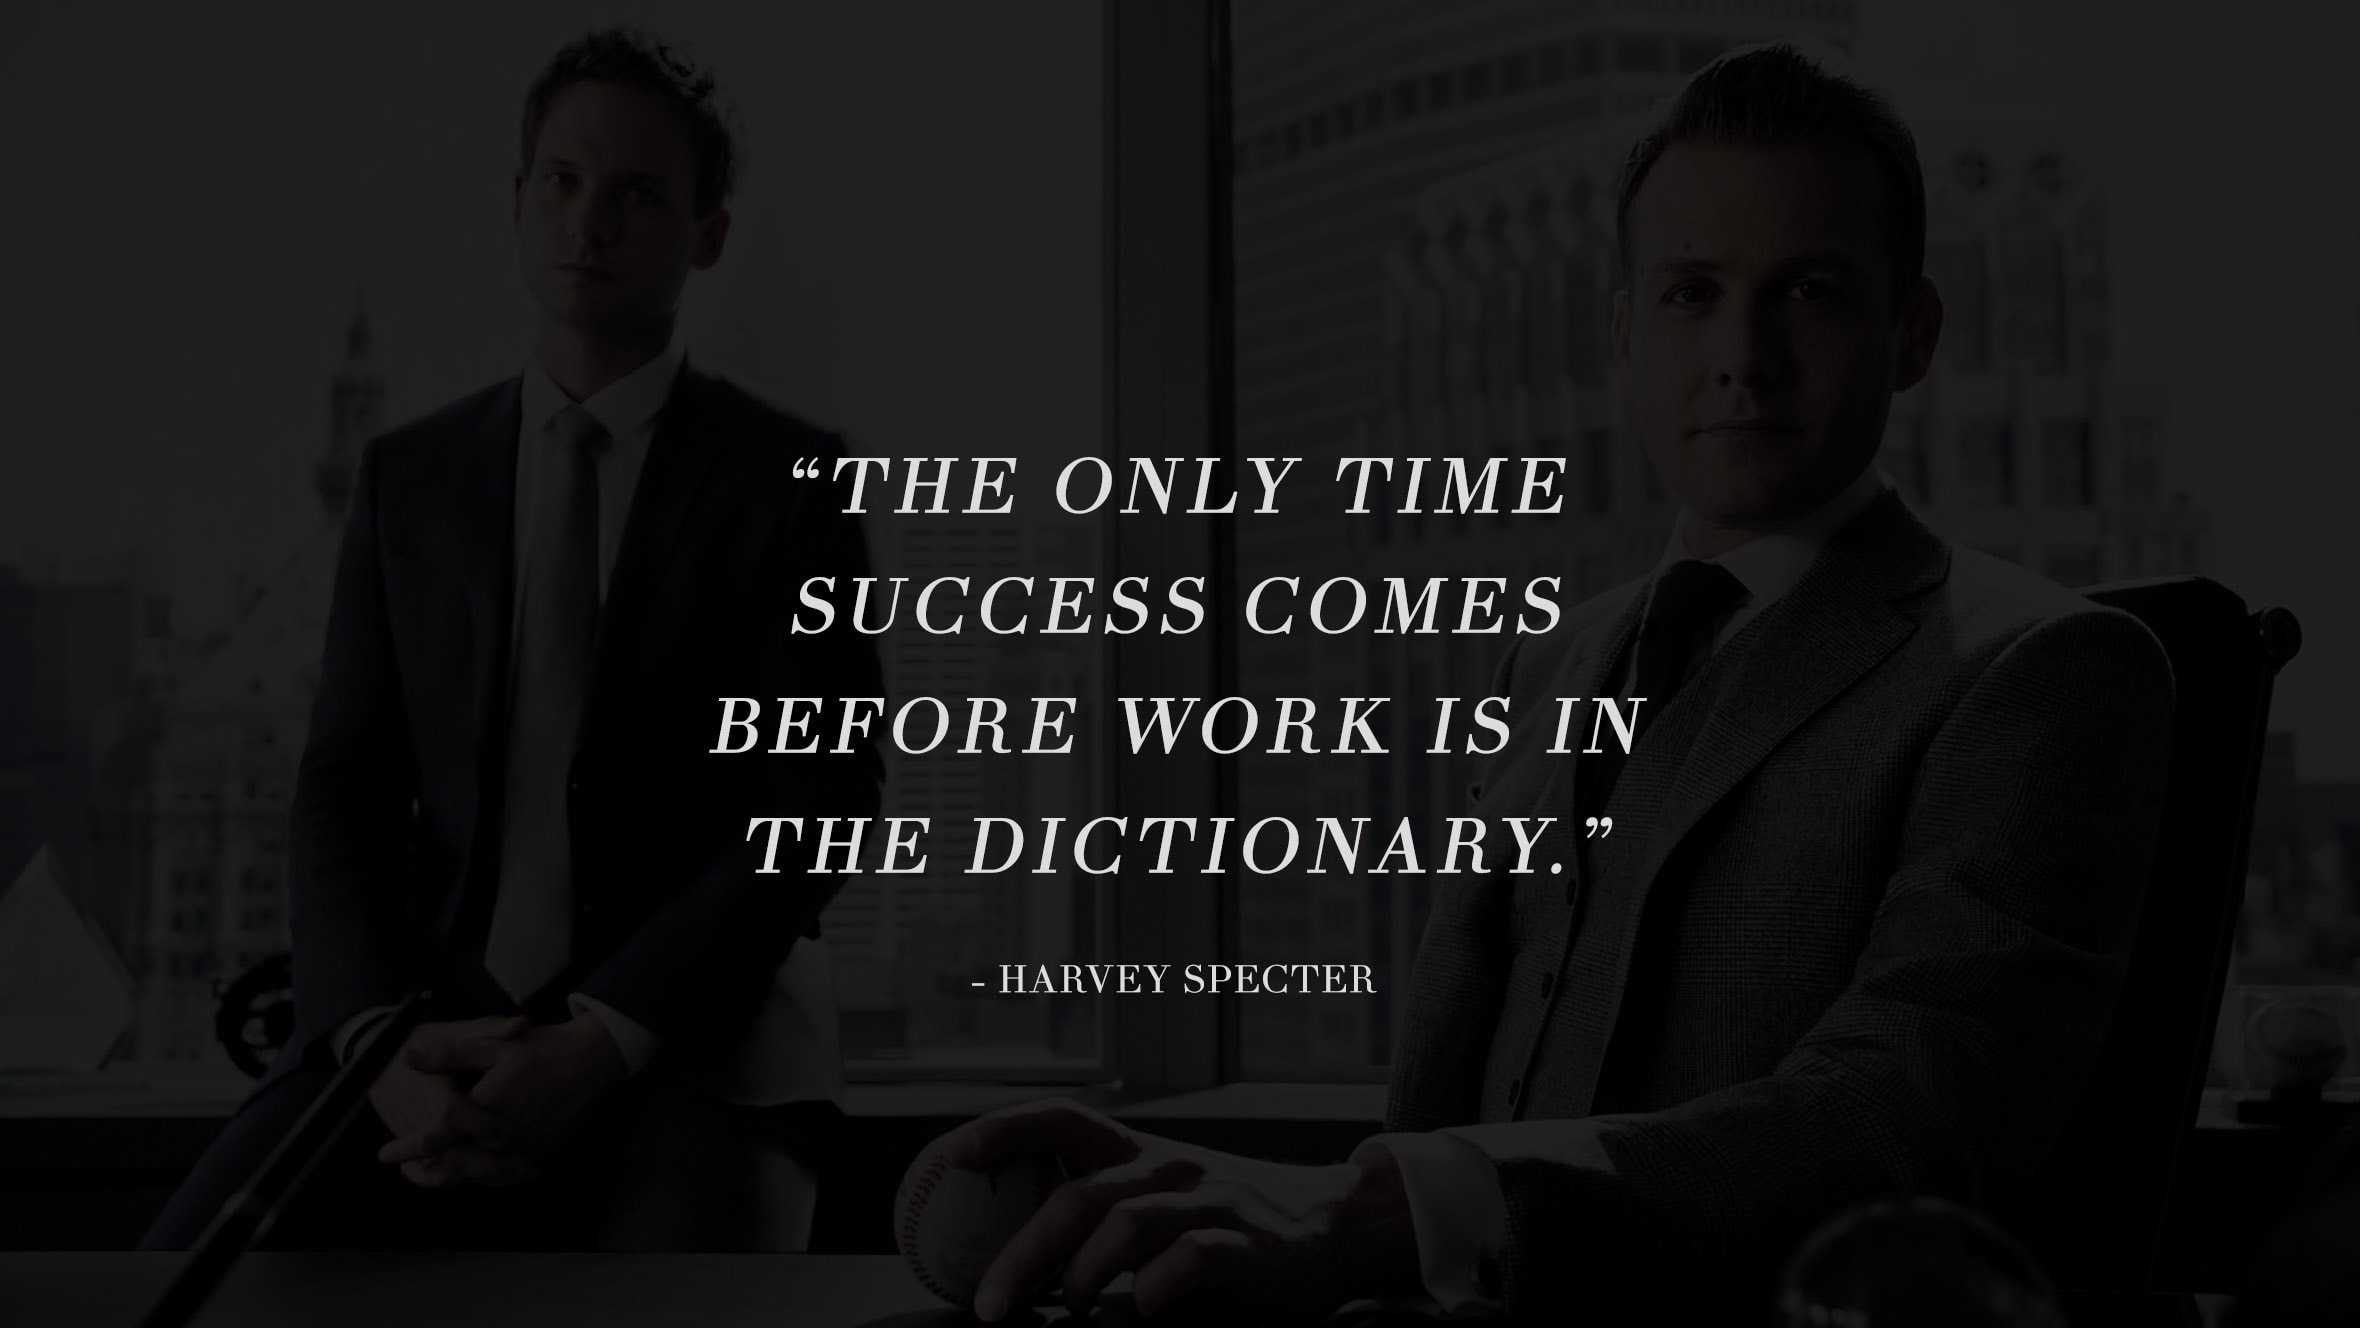 13 Highly Inspiring And Motivating Quotes From The Successful TV Series Suits 2